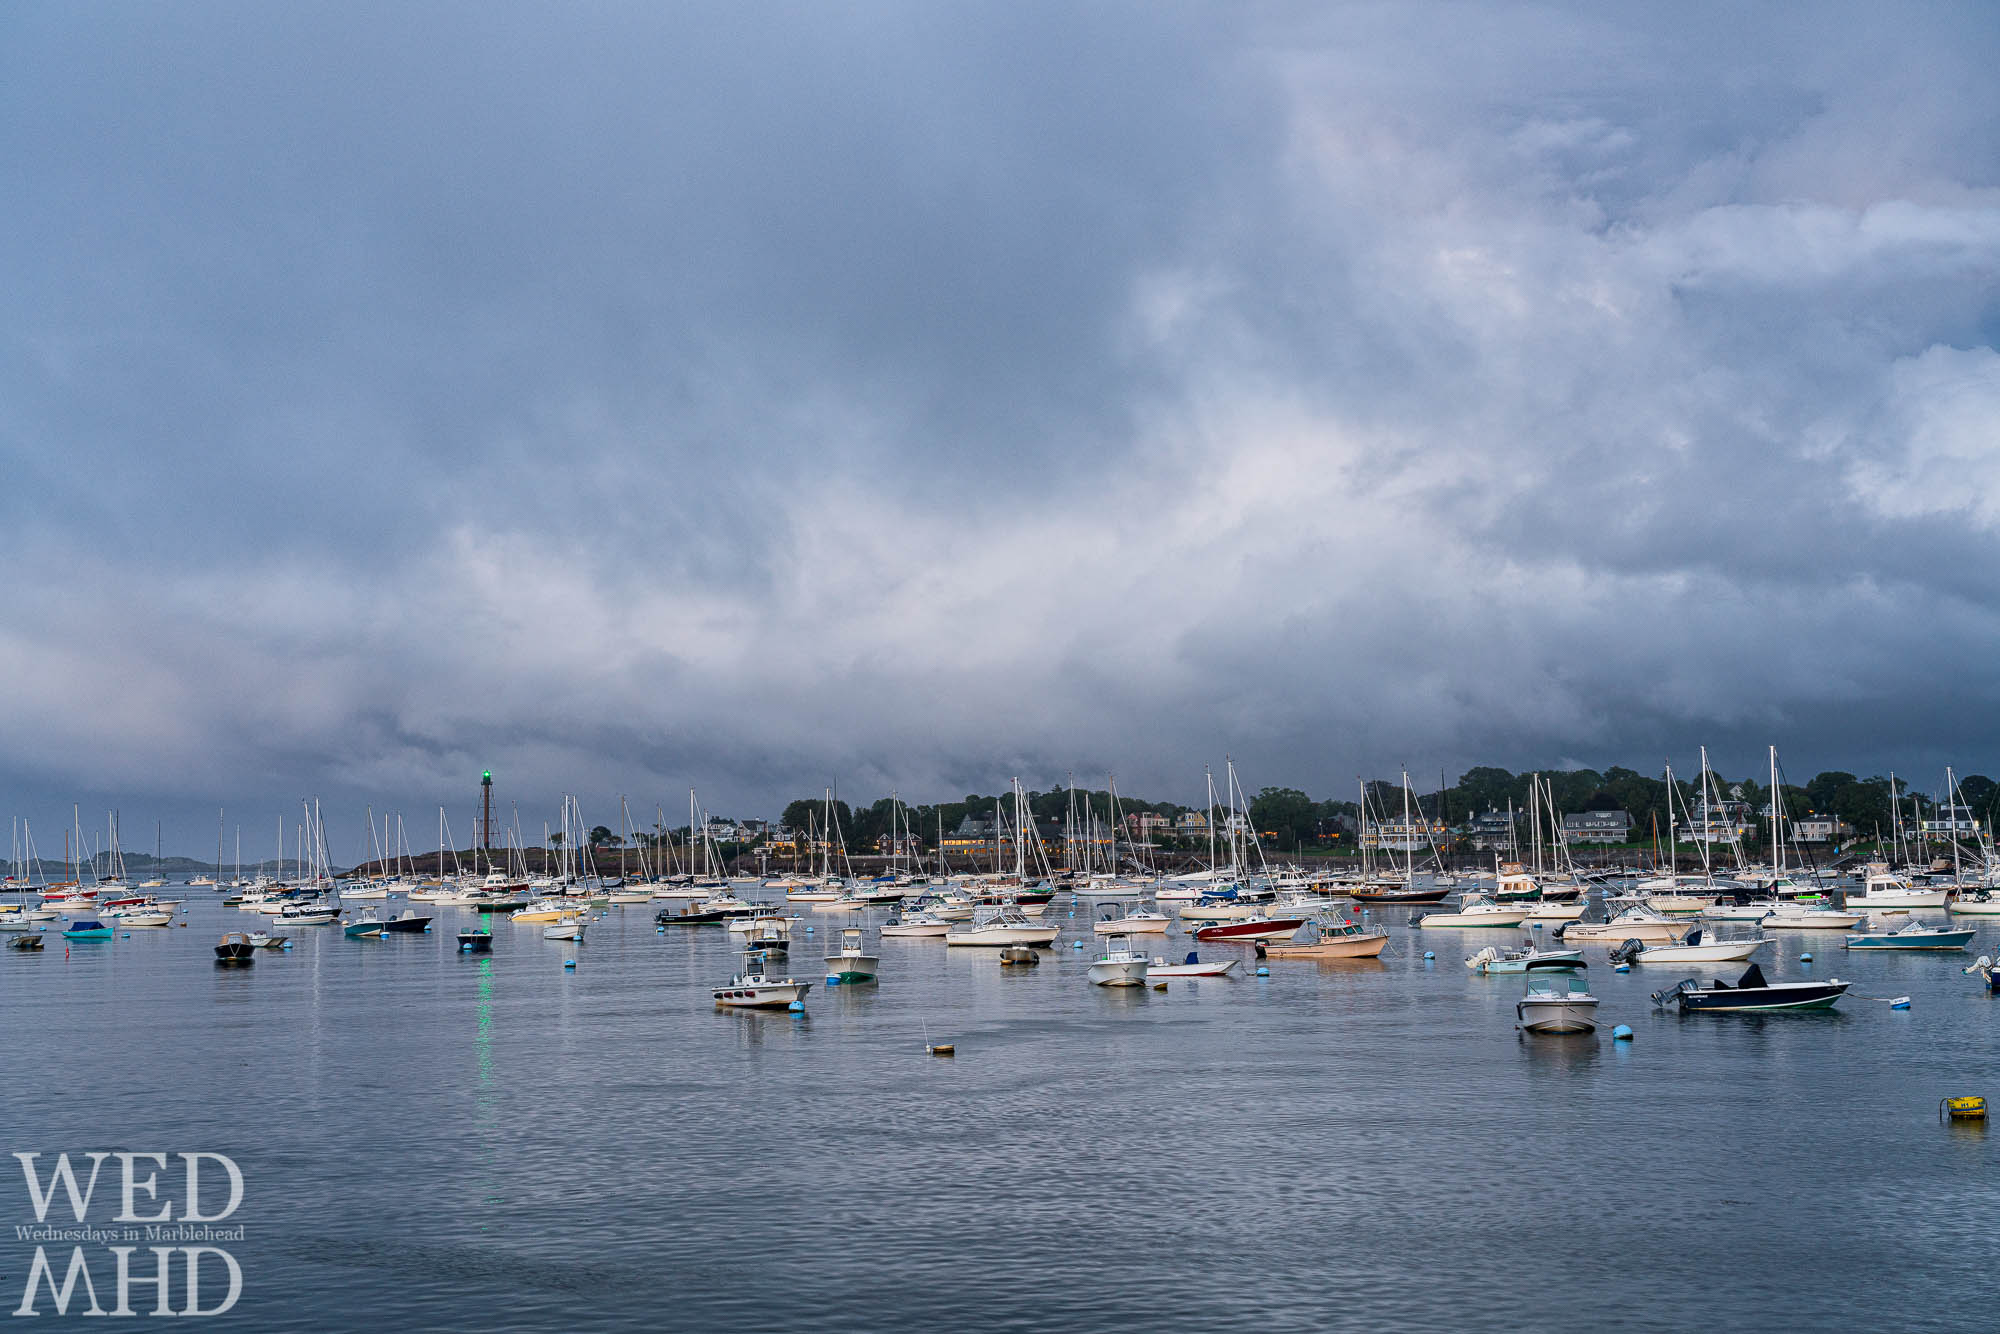 Marblehead Light's green light shines during the blue hour in this early September image of the harbor